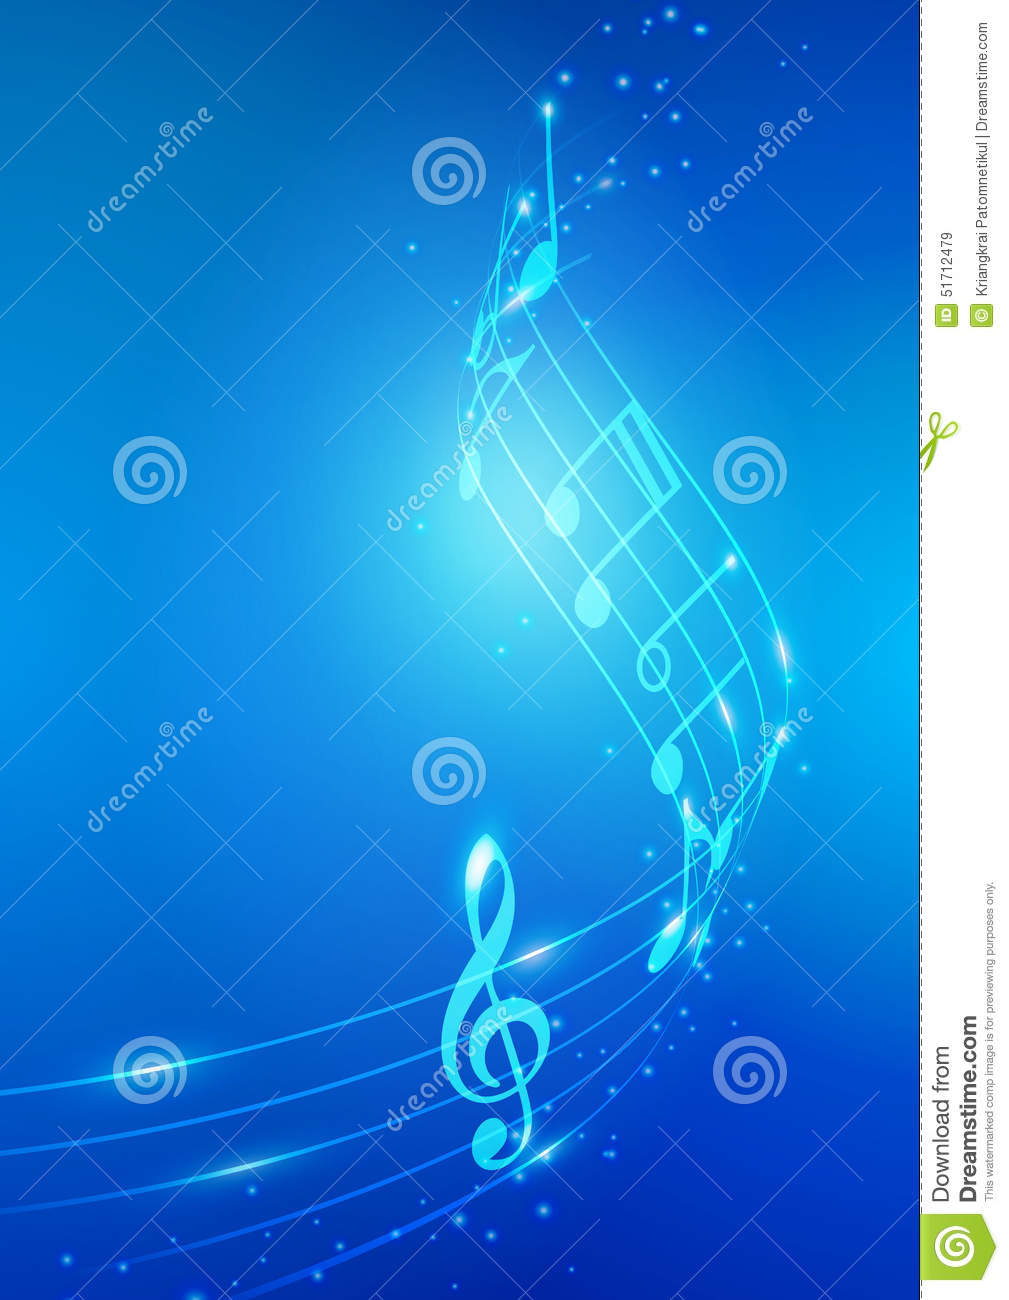 Royalty-free Blues music download, Blues background music